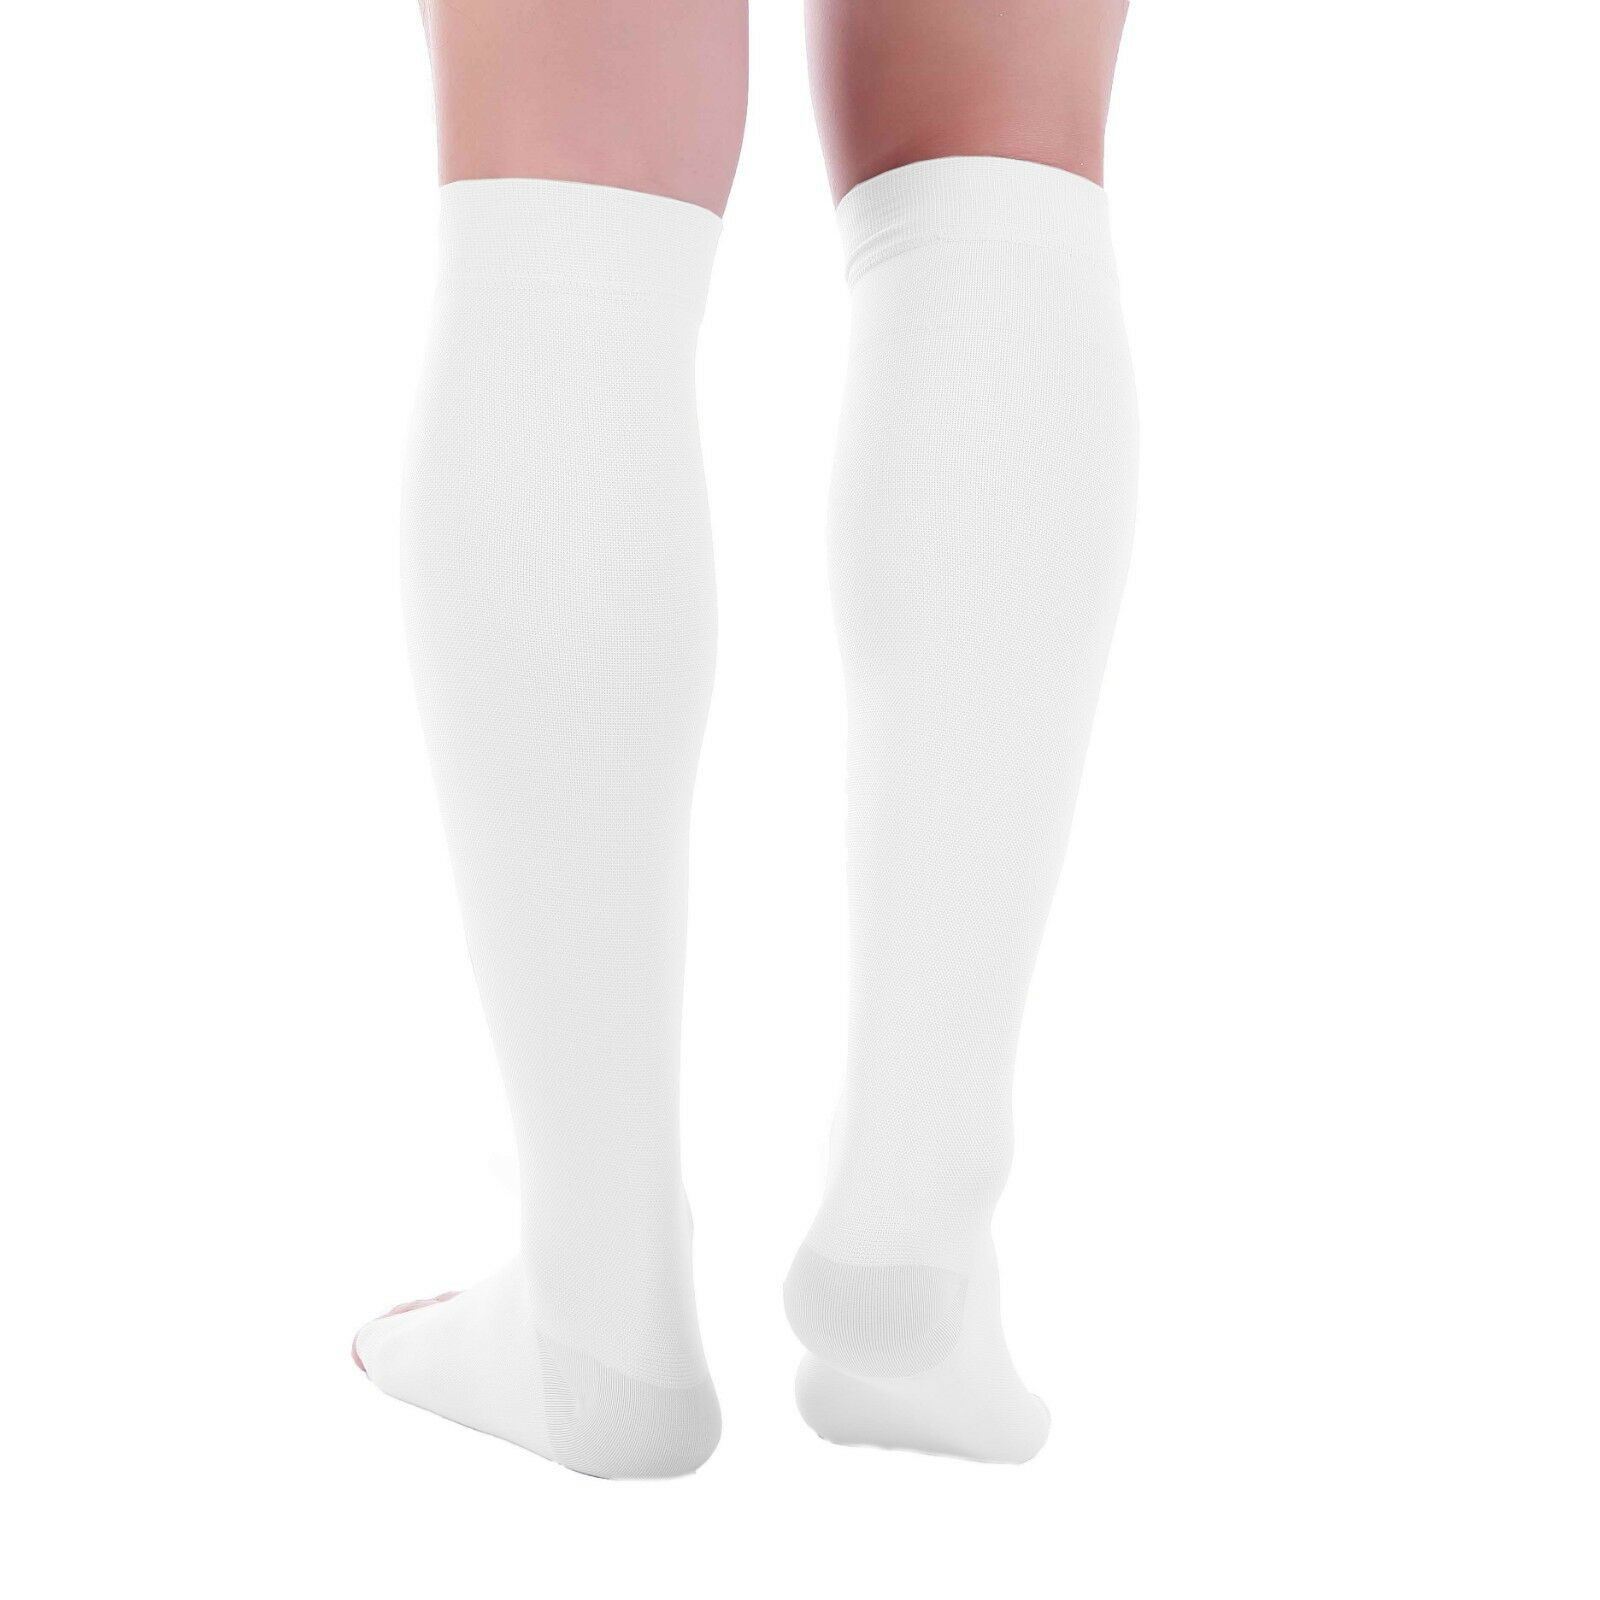 0d7b4d55da Doc Miller Open Toe Compression Socks 20-30 mmHg Recovery Varicose Veins  WHITE